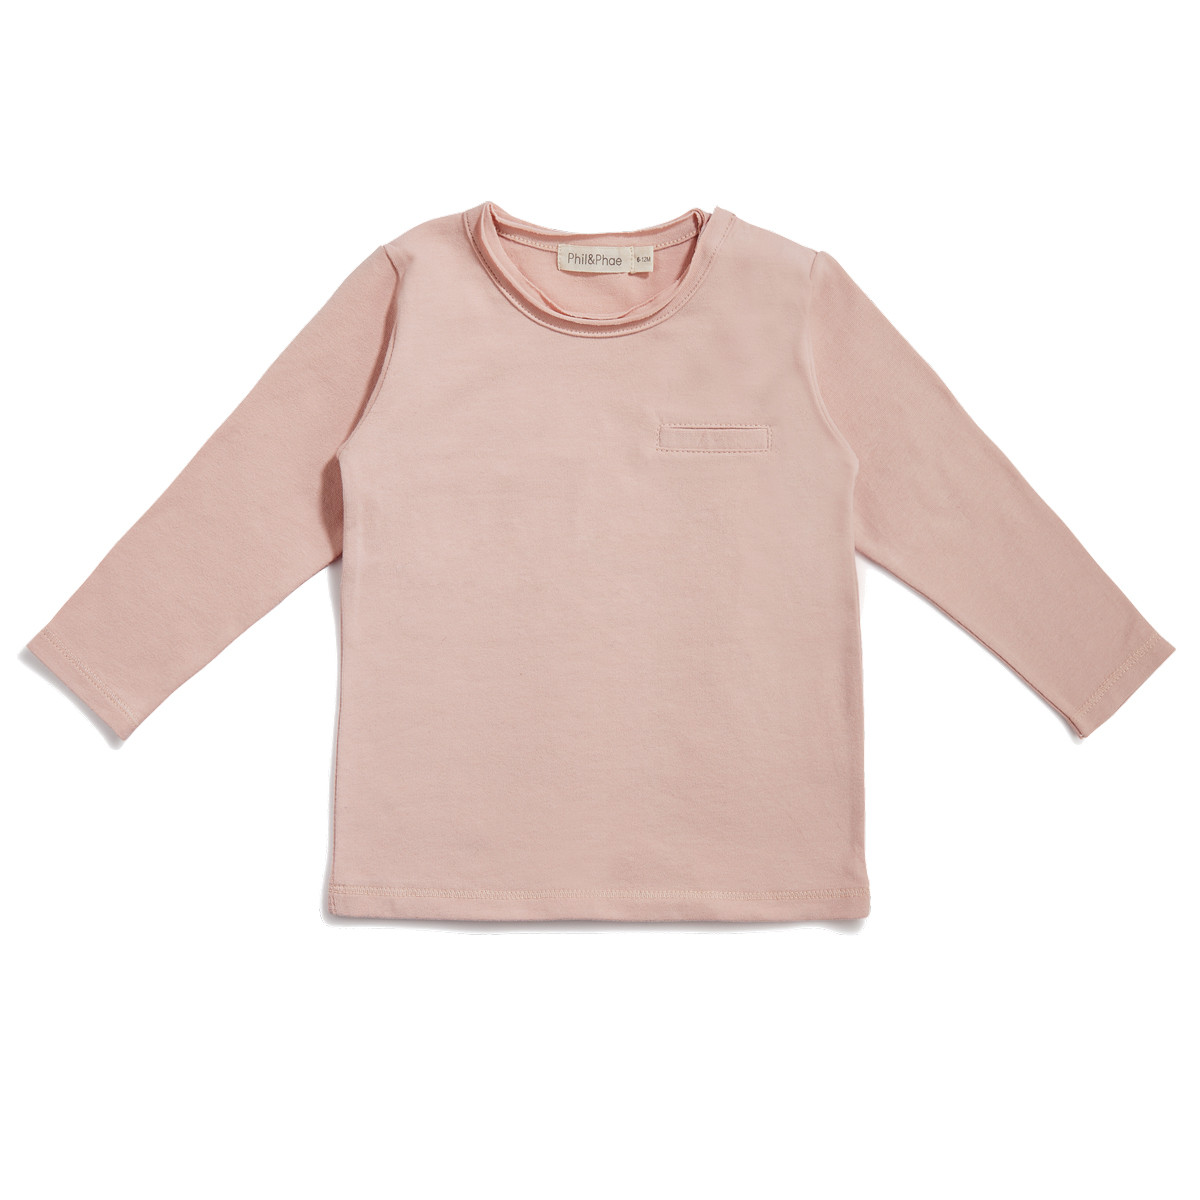 essentials-pocket-tee-ls-blush.jpg